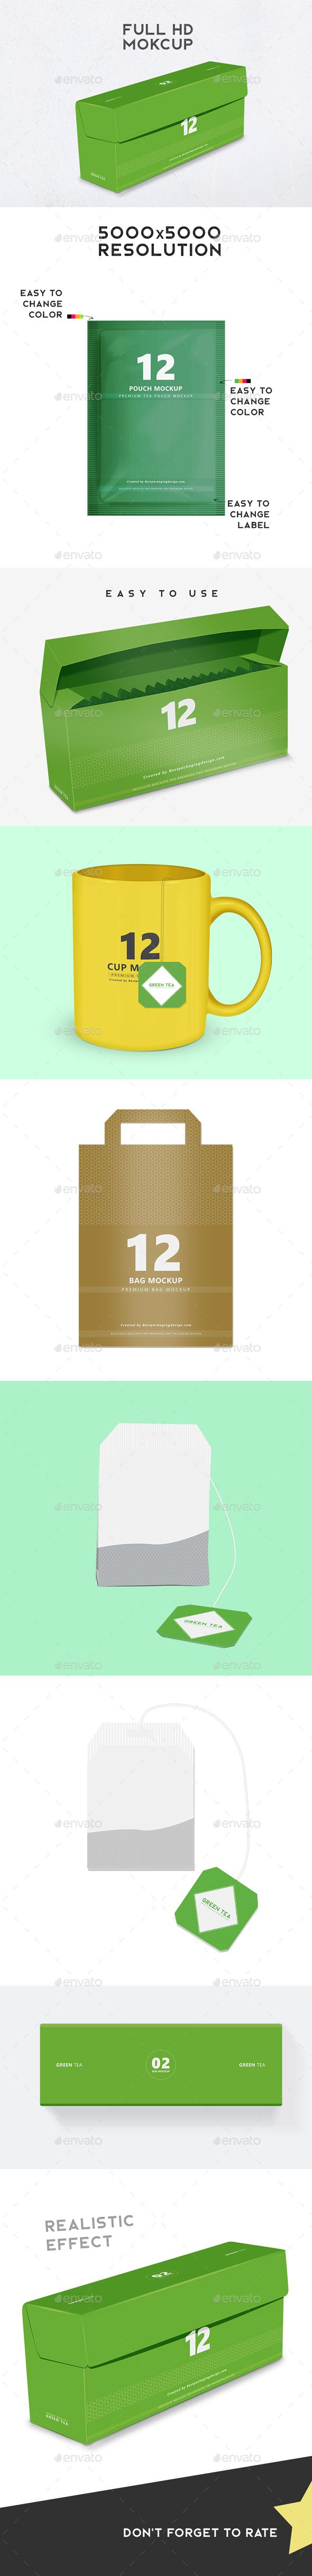 Download Green Tea Packaging Mockup A 20showcase Your Work On This Green Tea Packaging Mockup Premium Quality And In Tea Packaging Green Tea Detox Green Tea And Honey